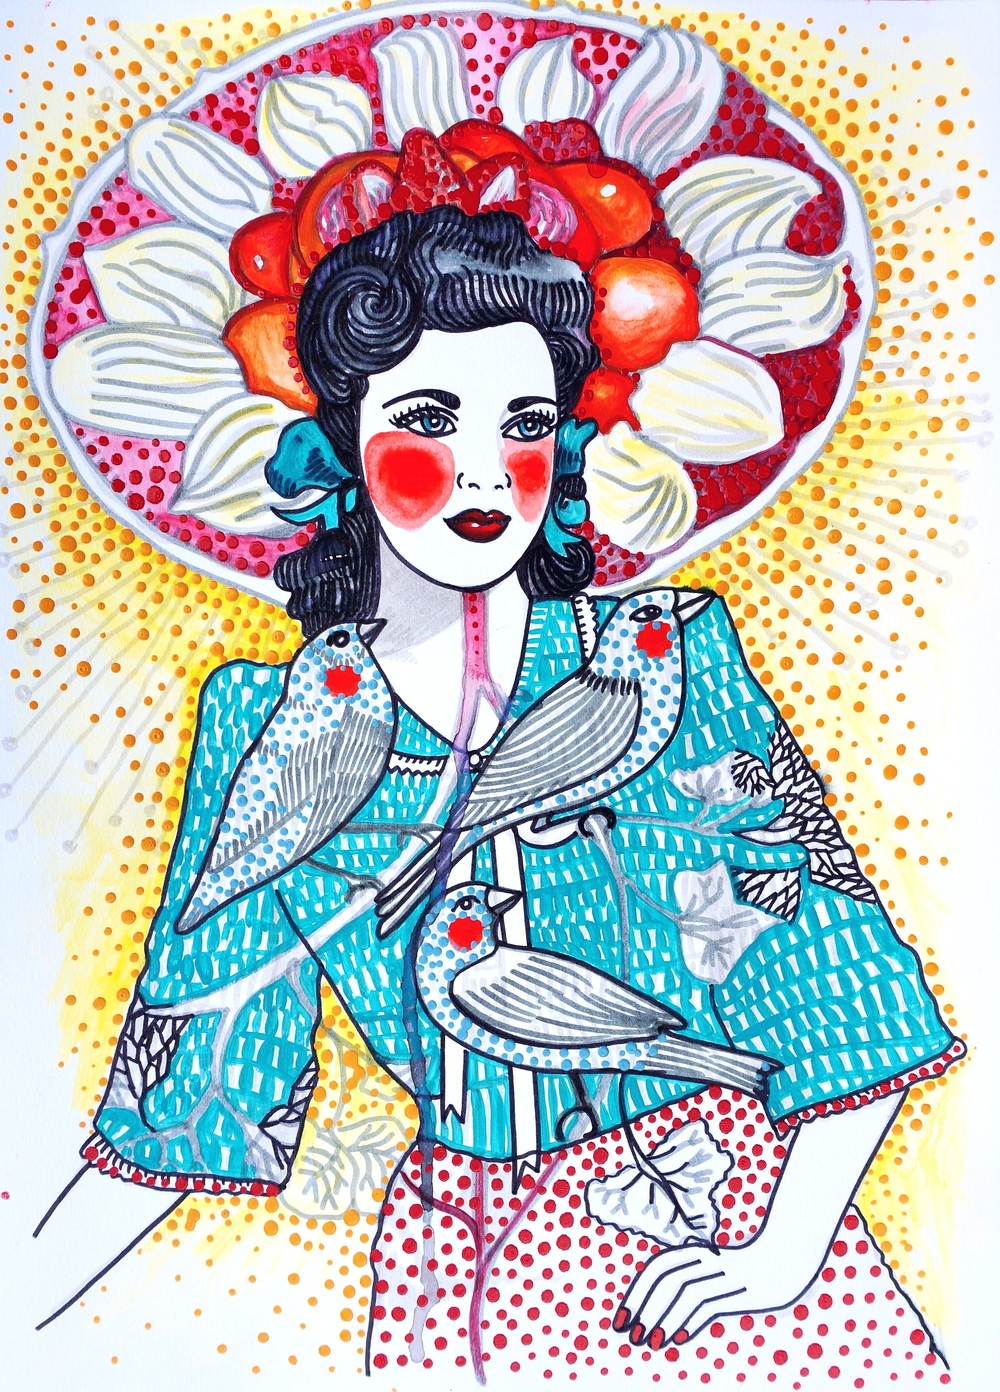 Hickey, S. 2016. Girl with Dessert Sombrero and trinity of birds, ink and paint on paper on A3 paper [447100].jpg